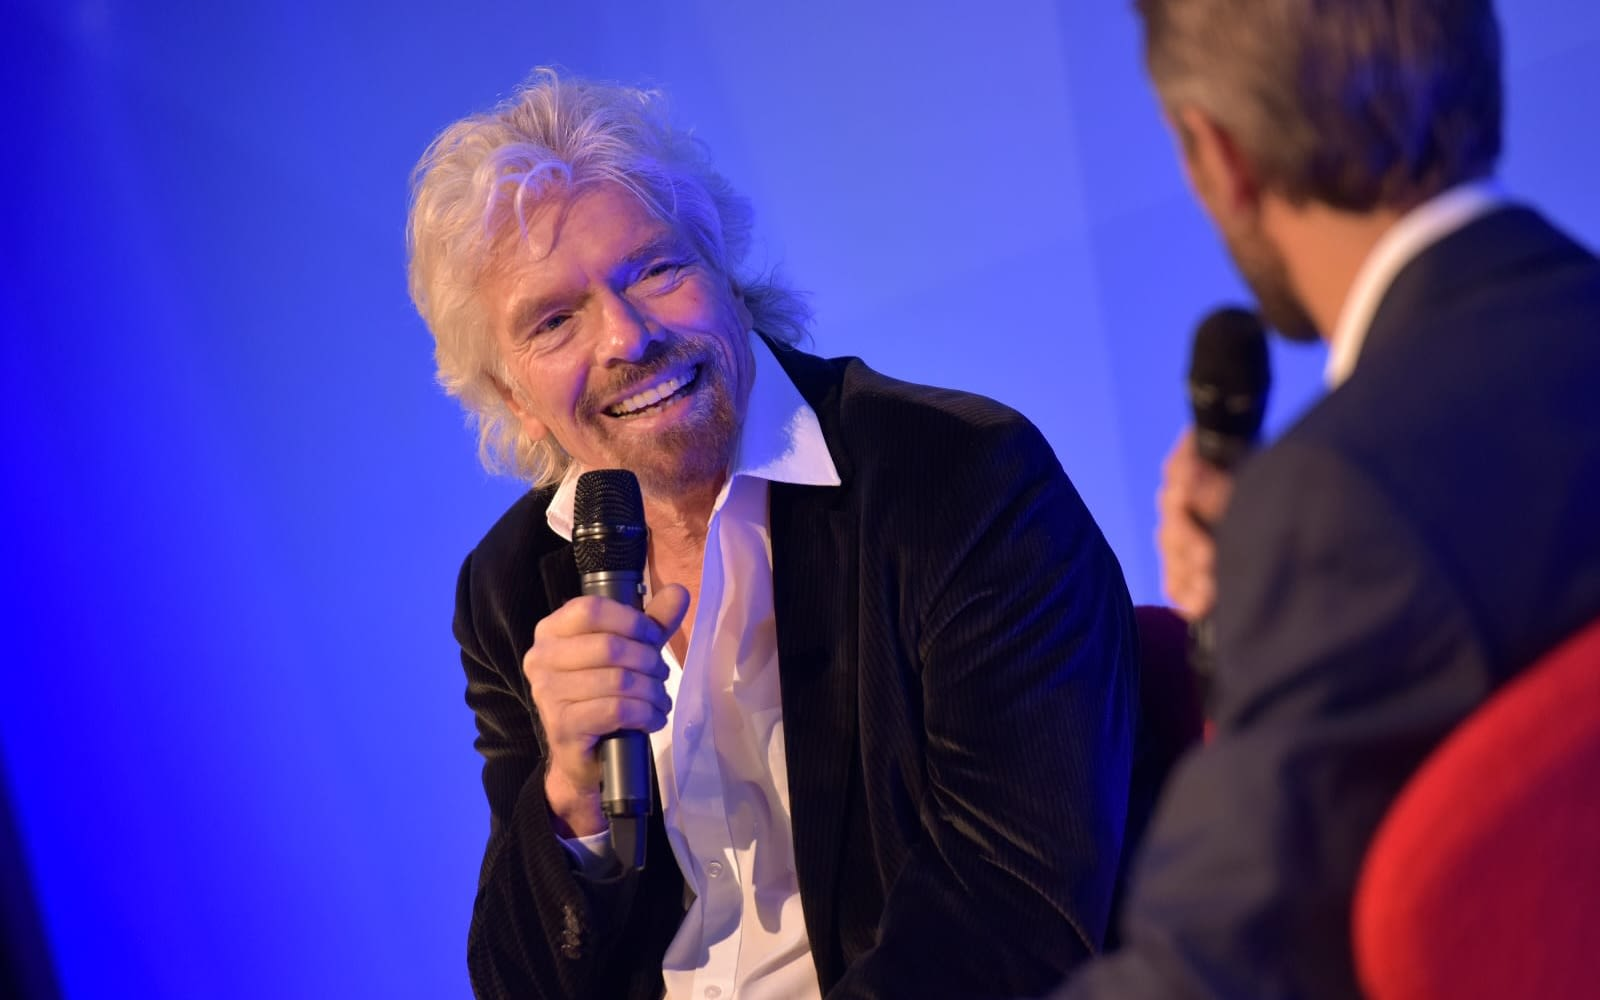 Richard Branson talking to Josh Bayliss on stage with microphones